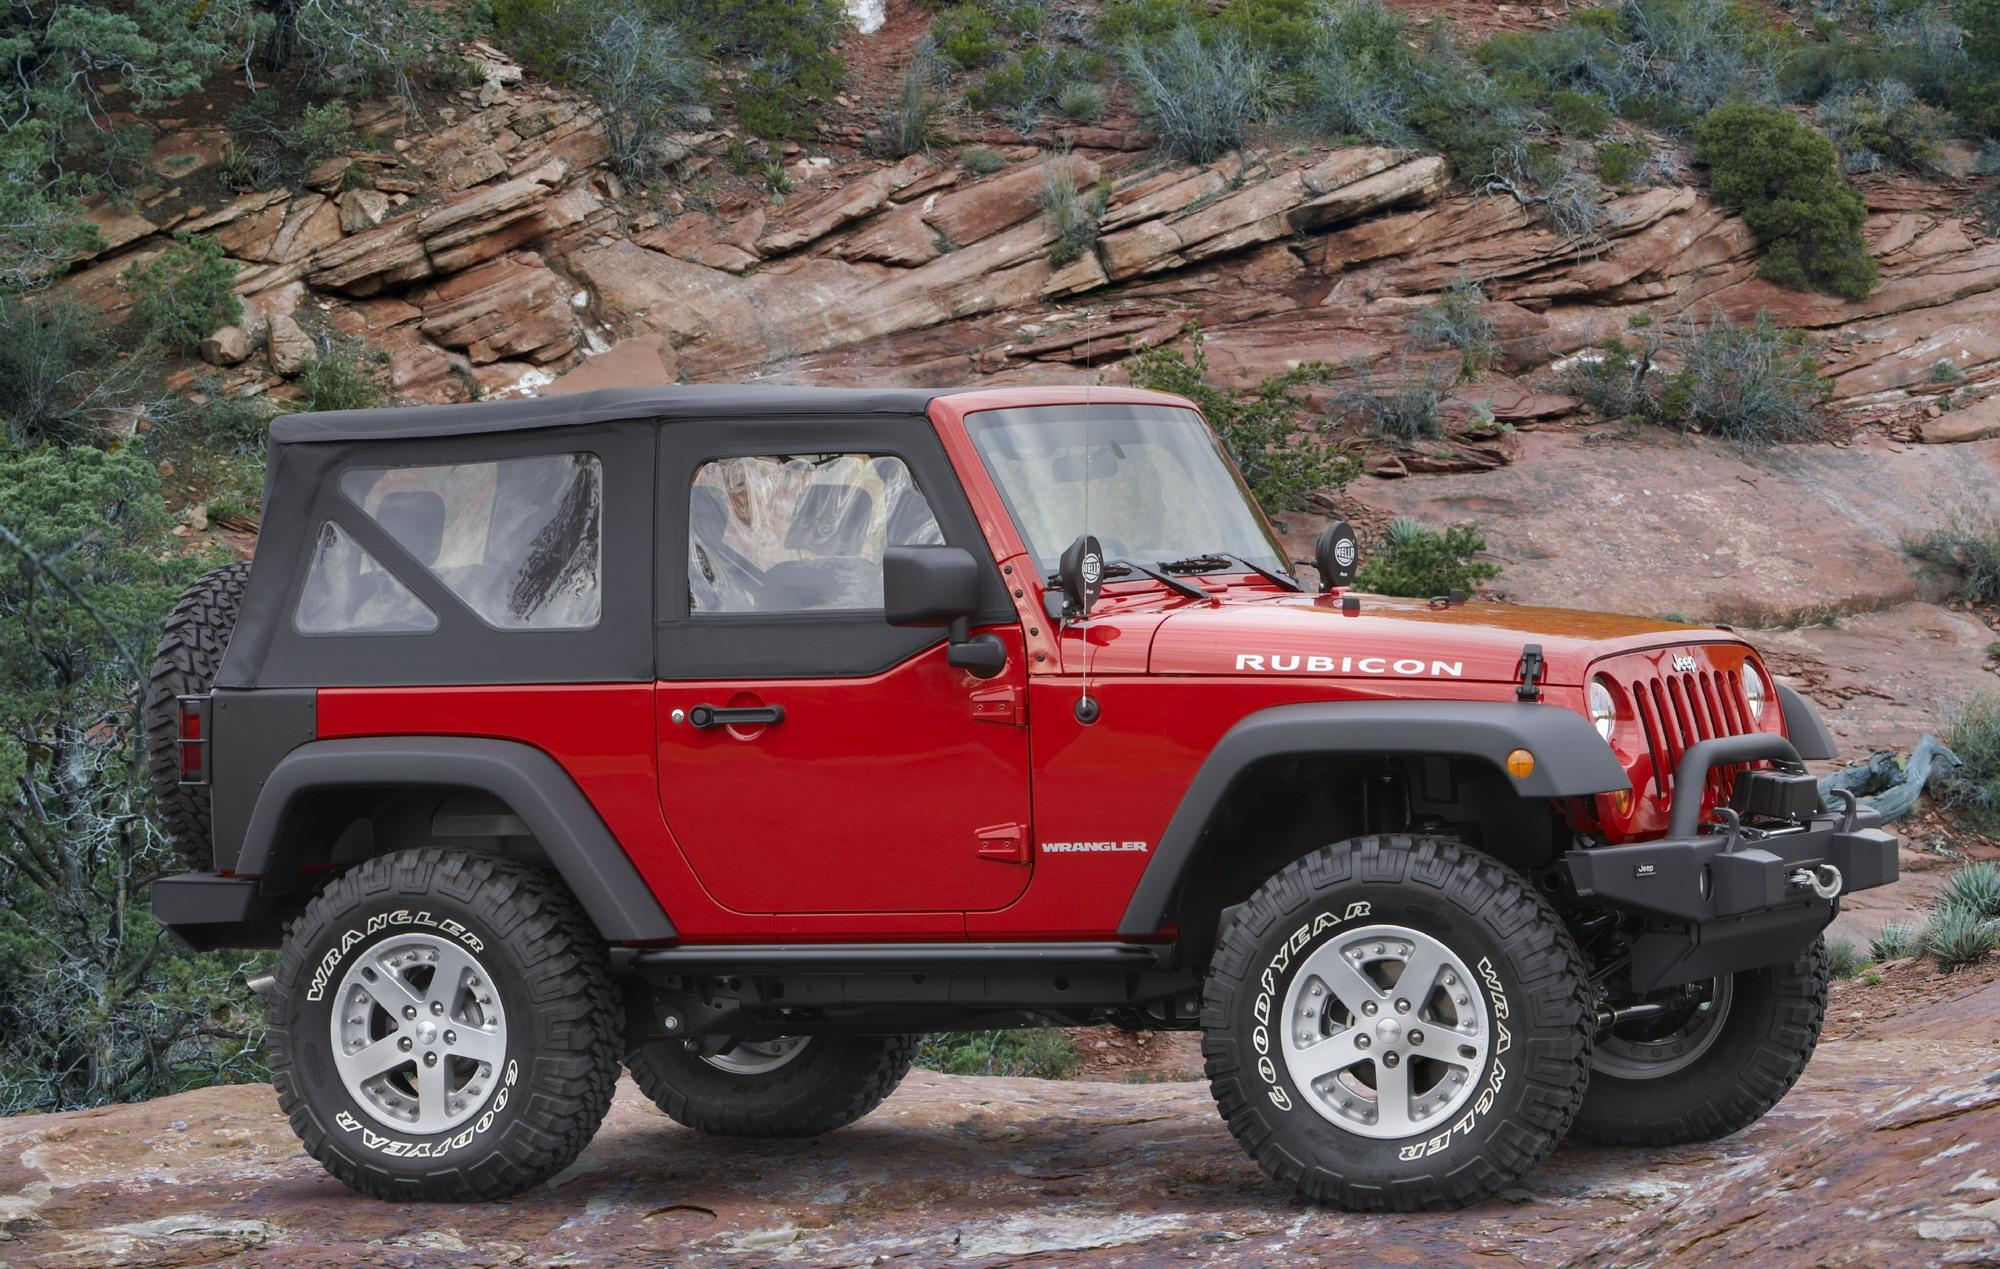 Jeep Wrangler News And Reviews Top Speed 2009 Rubicon V6 38 Liter Gas Radiator Components 2010 Extreme Off Road